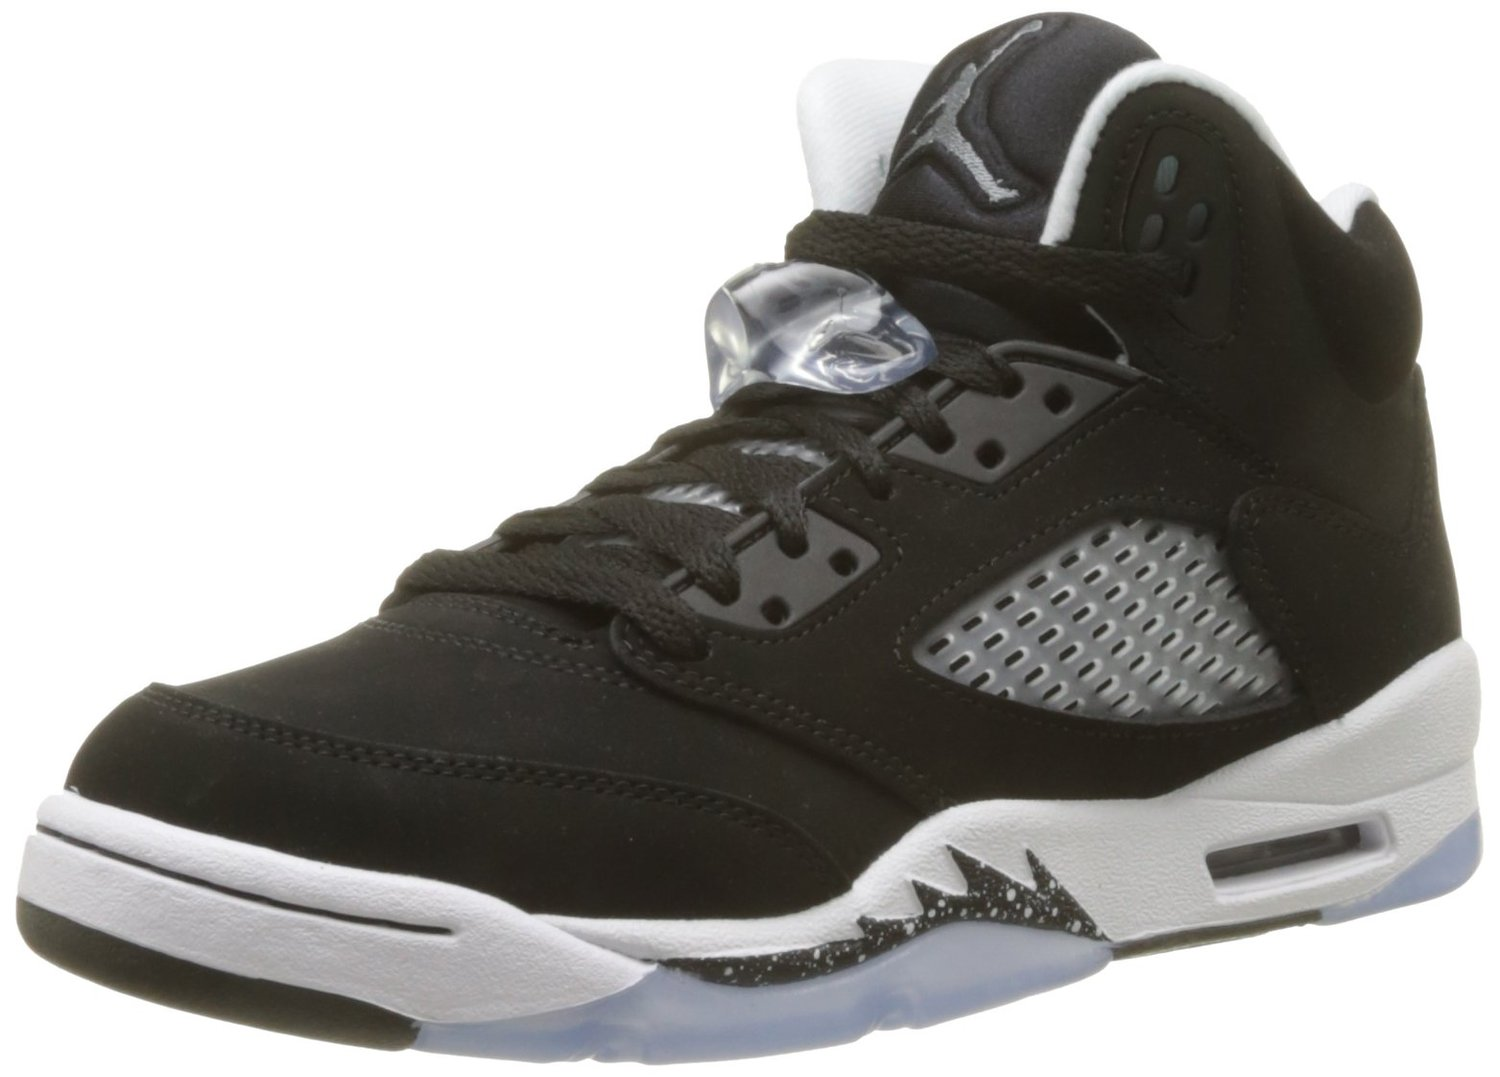 AIR JORDAN 5 RETRO (GS) 'OREO' - 440888-035